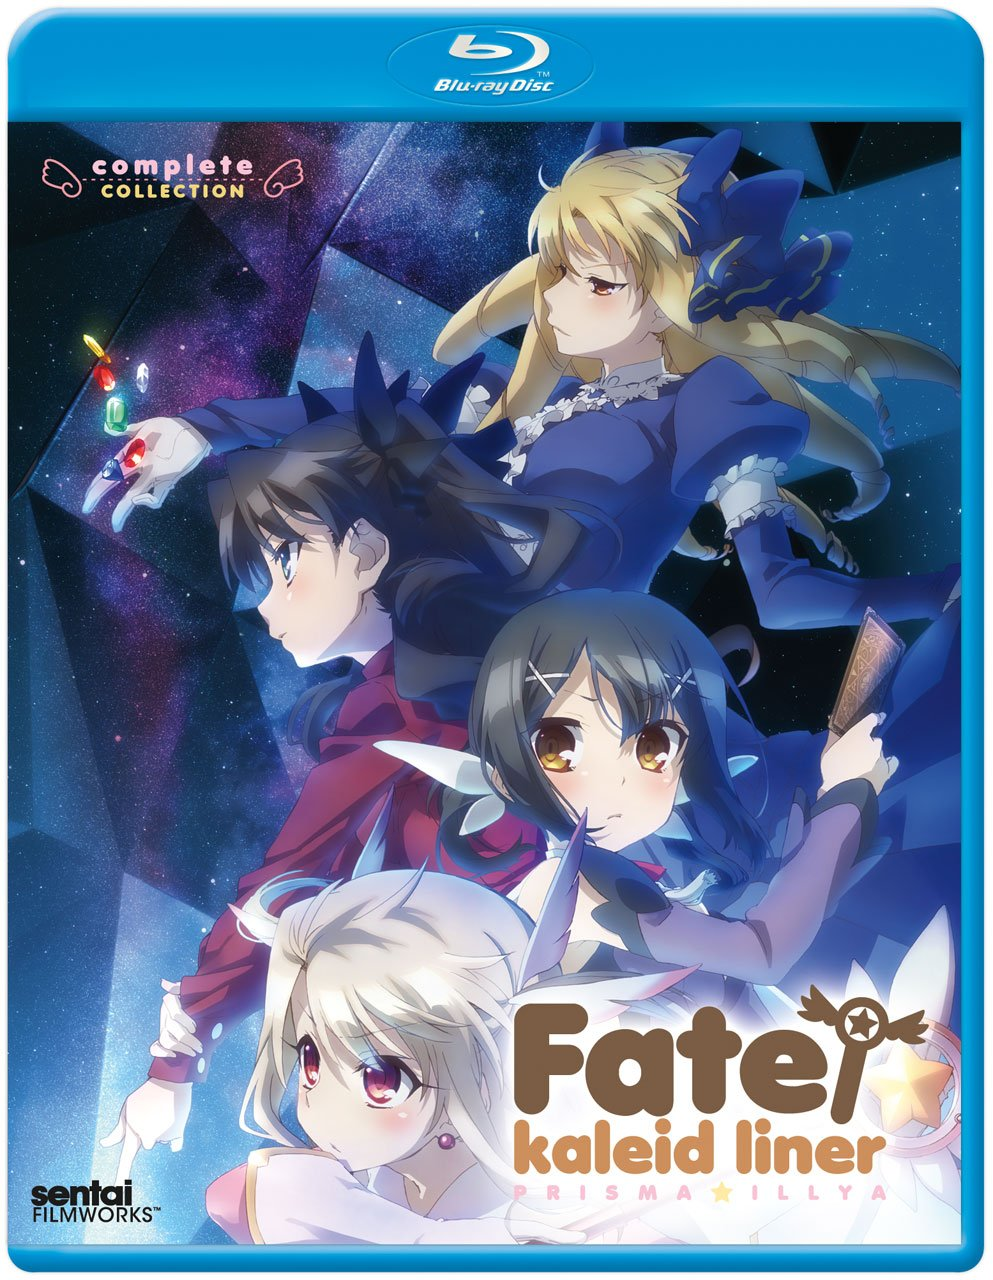 Fate / Kaleid Liner - Prisma Illya Complete Collection [Blu-ray] Sentai Filmworks Anime / Japanimation Cartoons & Animation Movie